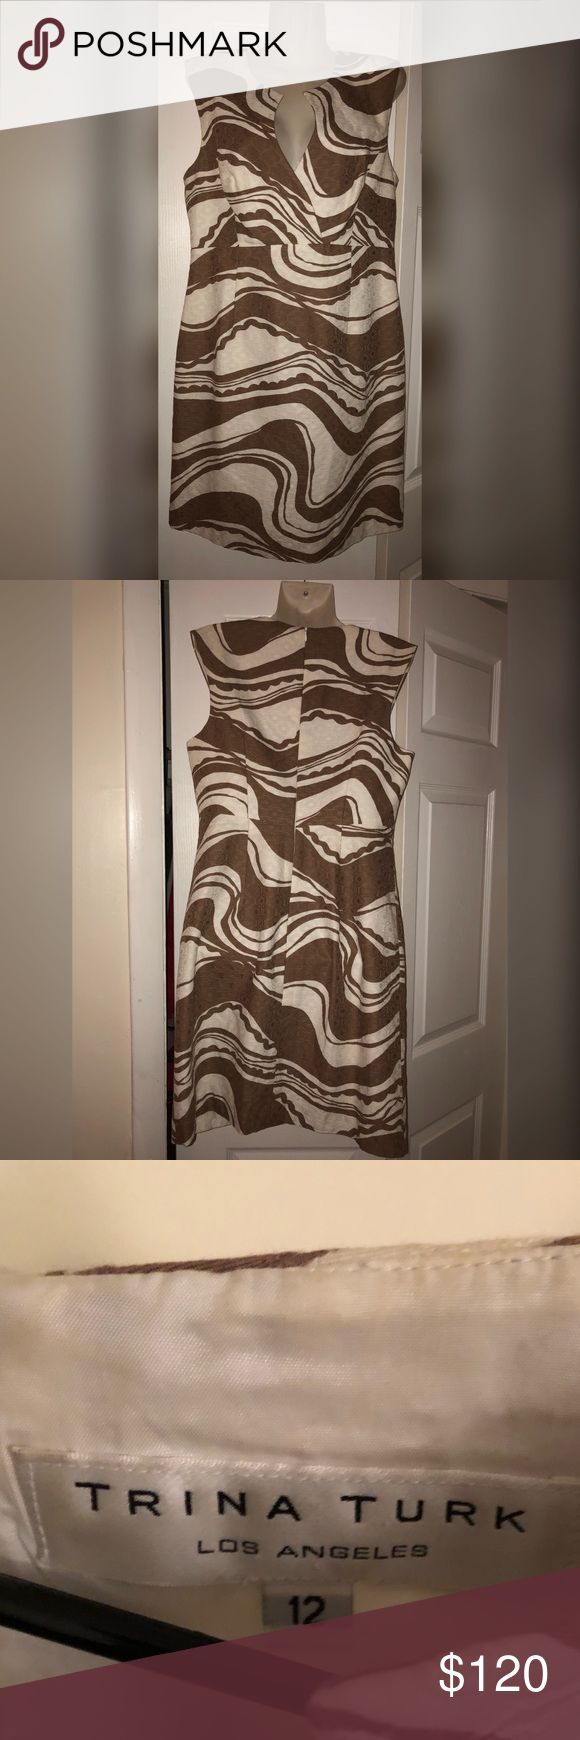 ❤️TRINA TURK DRESS This Trina Turner dress is beautiful & unique, absolutely an attention grabber! Will be perfect for any formal occasion and/or a day at the office. Worn only once on a date night & in great condition ❤️ Trina Turk Dresses